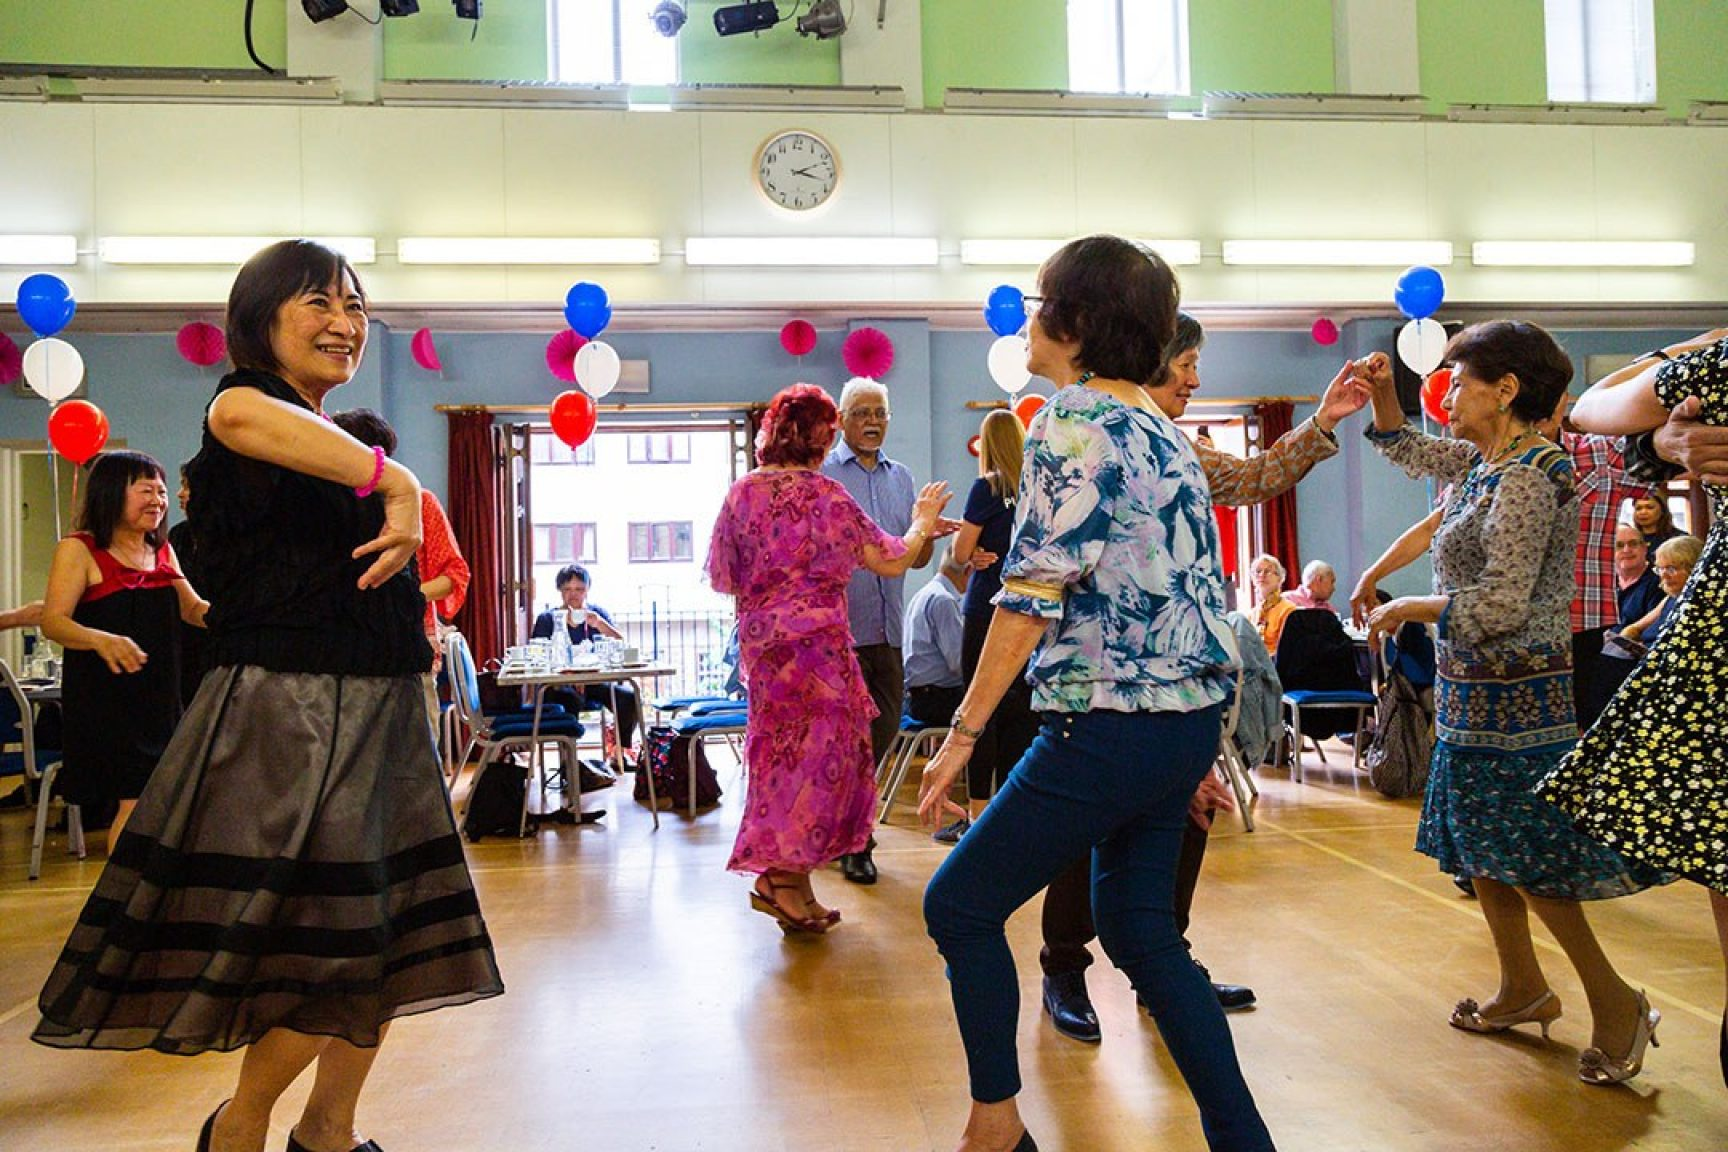 A dancing event at a community space. There are various women dancing, and the space is decorated with balloons.